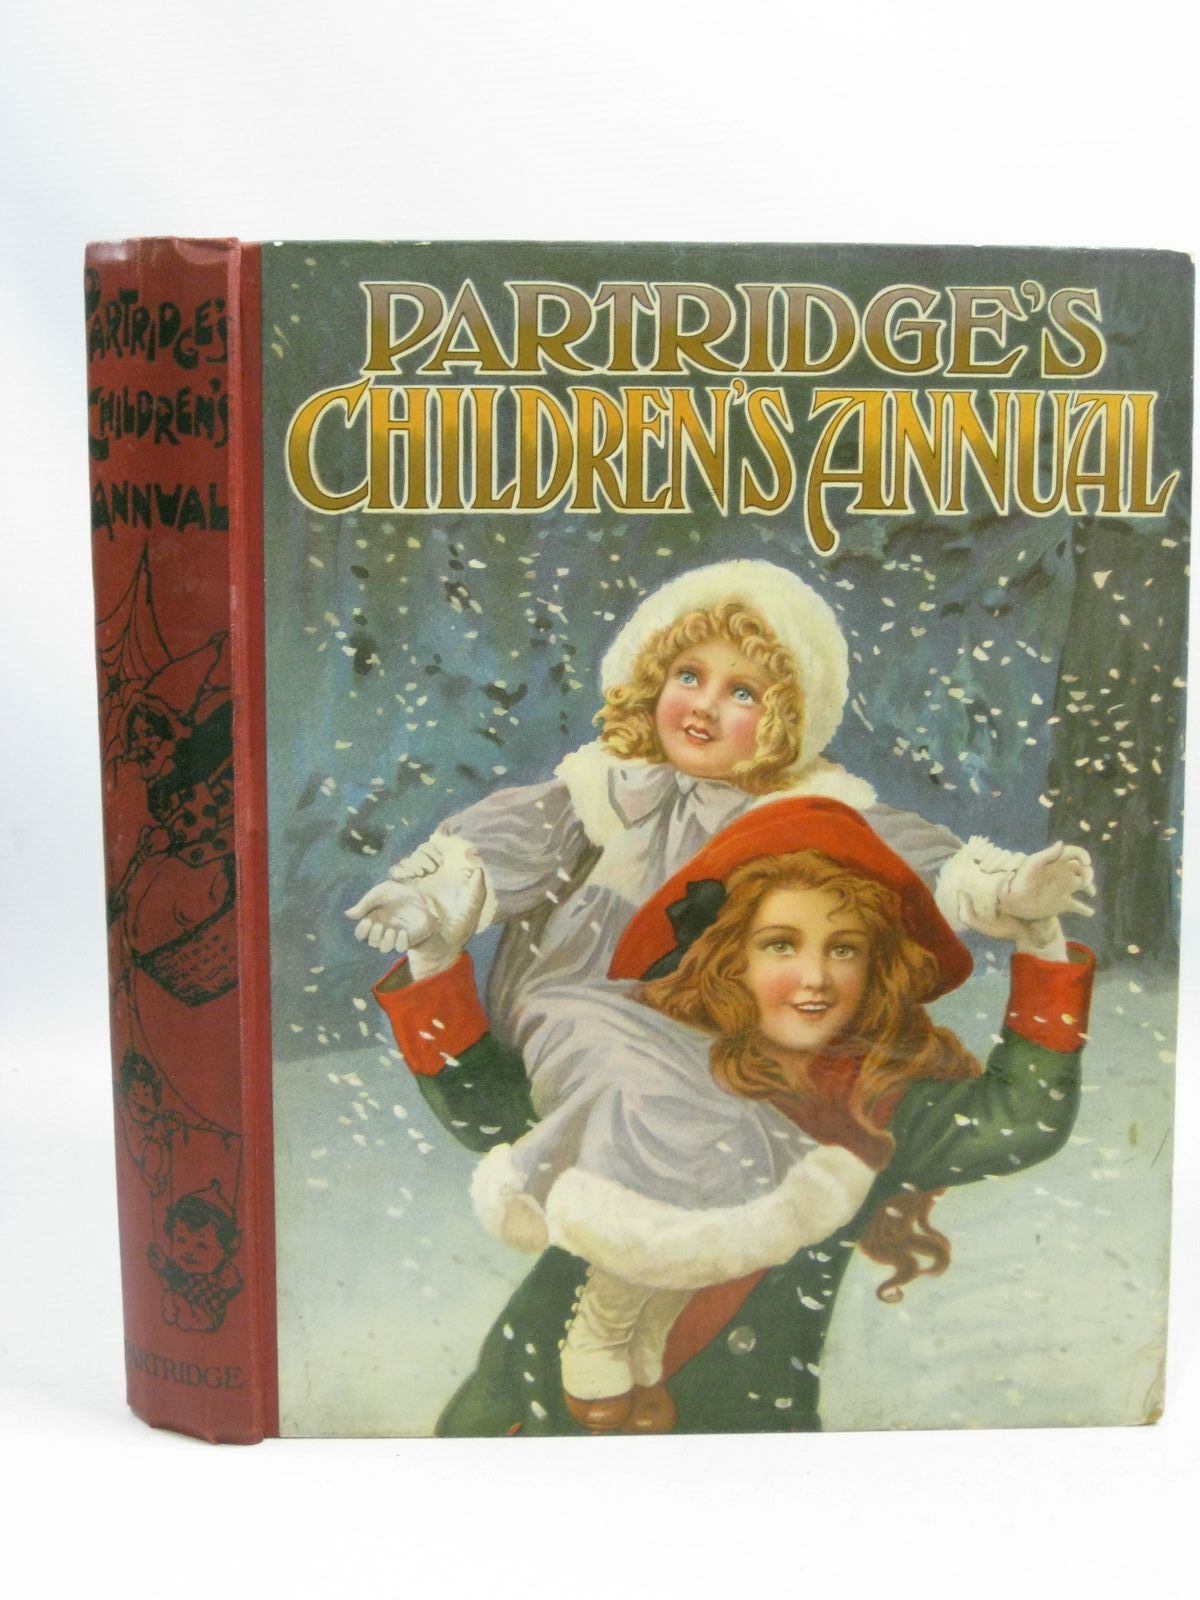 Photo of PARTRIDGE'S CHILDREN'S ANNUAL - 5TH YEAR written by Moore, Dorothea Lea, John Inchfawn, Fay et al, illustrated by Aris, Ernest A. Wain, Louis Earnshaw, Harold C. Lumley, Savile Tarrant, Margaret Temple, Chris et al., published by S.W. Partridge & Co. Ltd. (STOCK CODE: 1505453)  for sale by Stella & Rose's Books